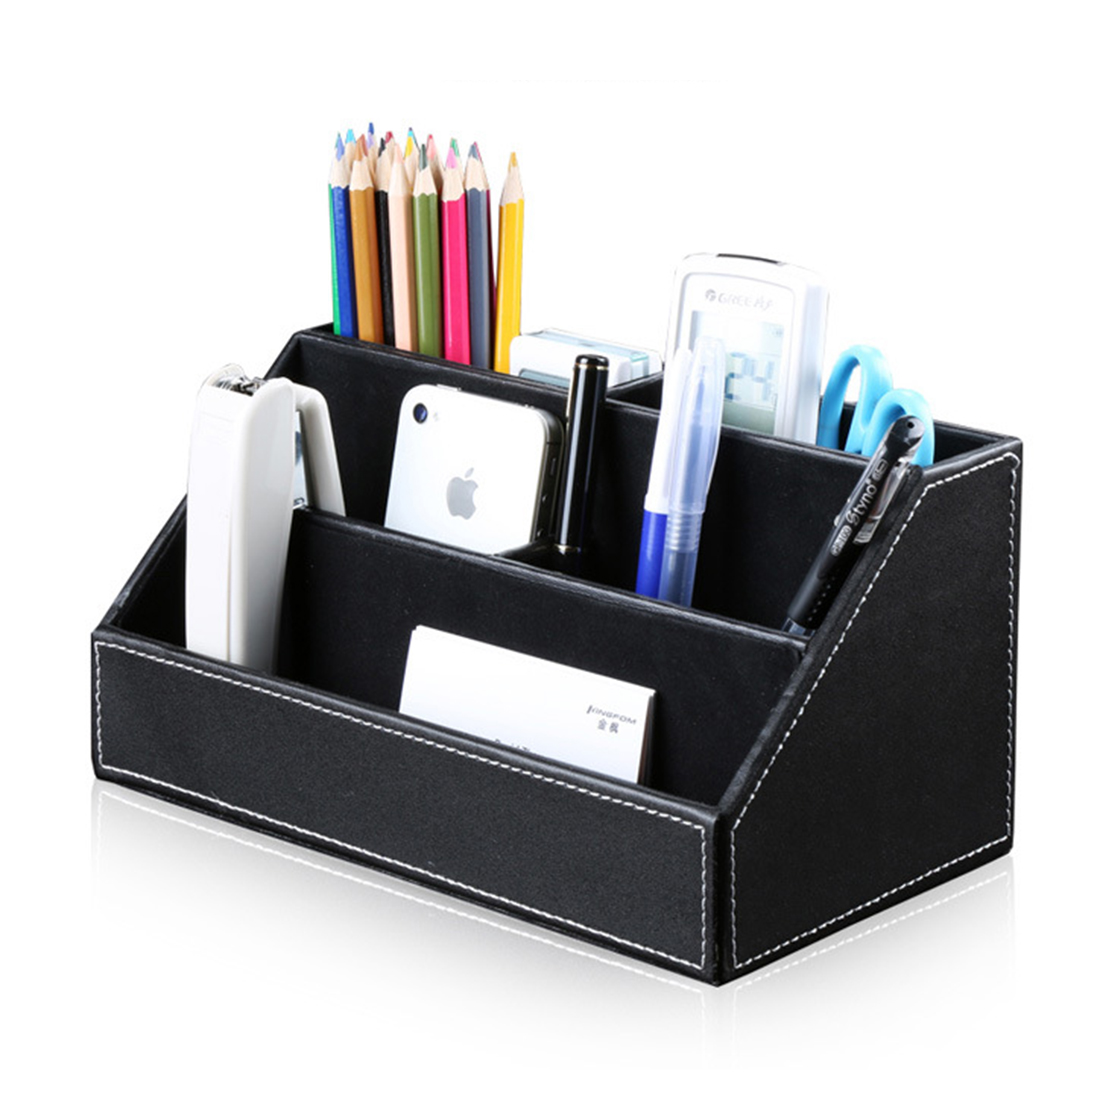 HIPSTEEN 5 Compartment PU Leather Desk Organizer Pen Business ...